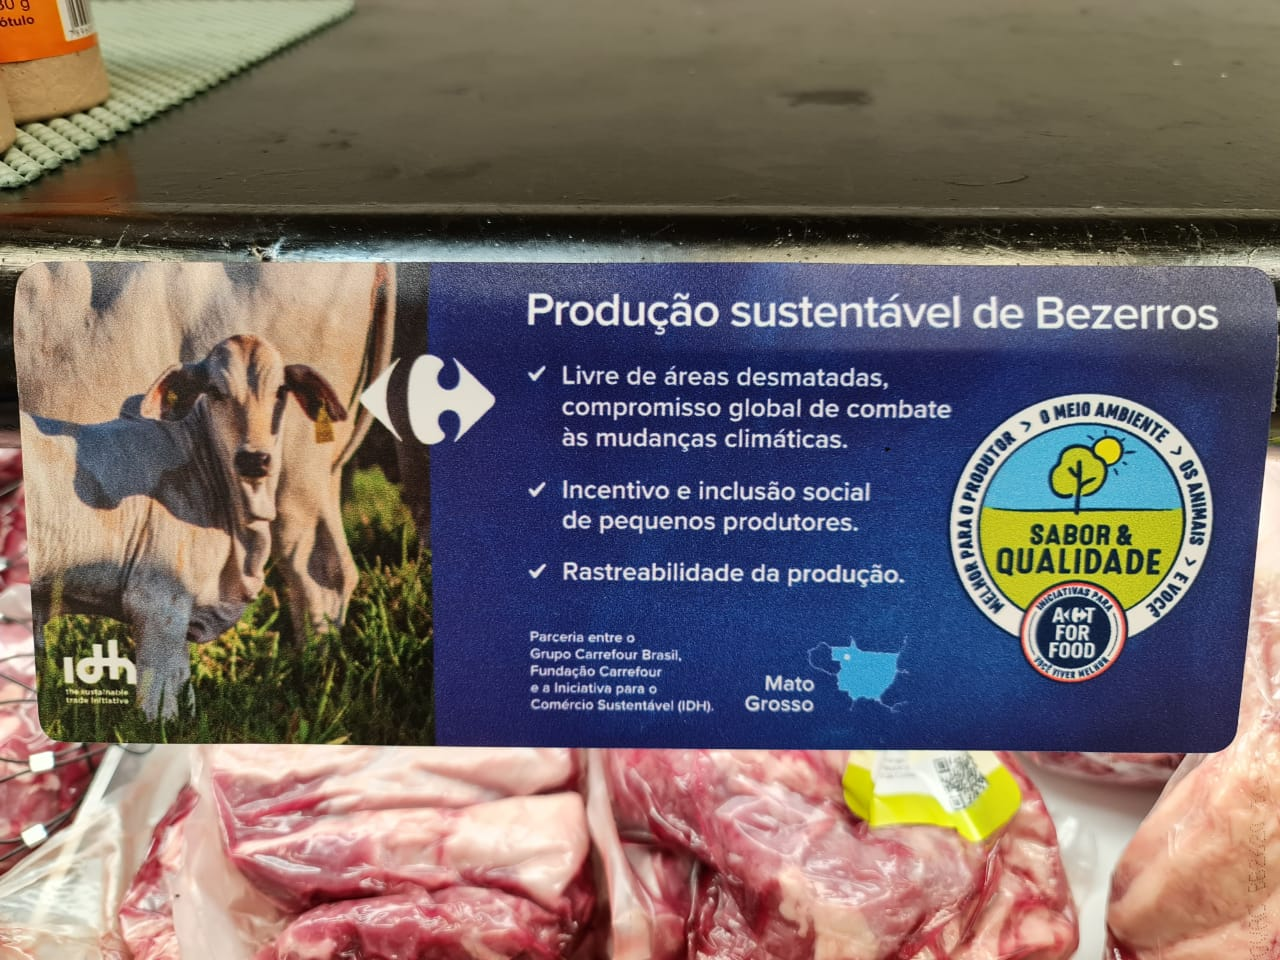 Deforestation free beef in Carrefour store in Sao Paulo